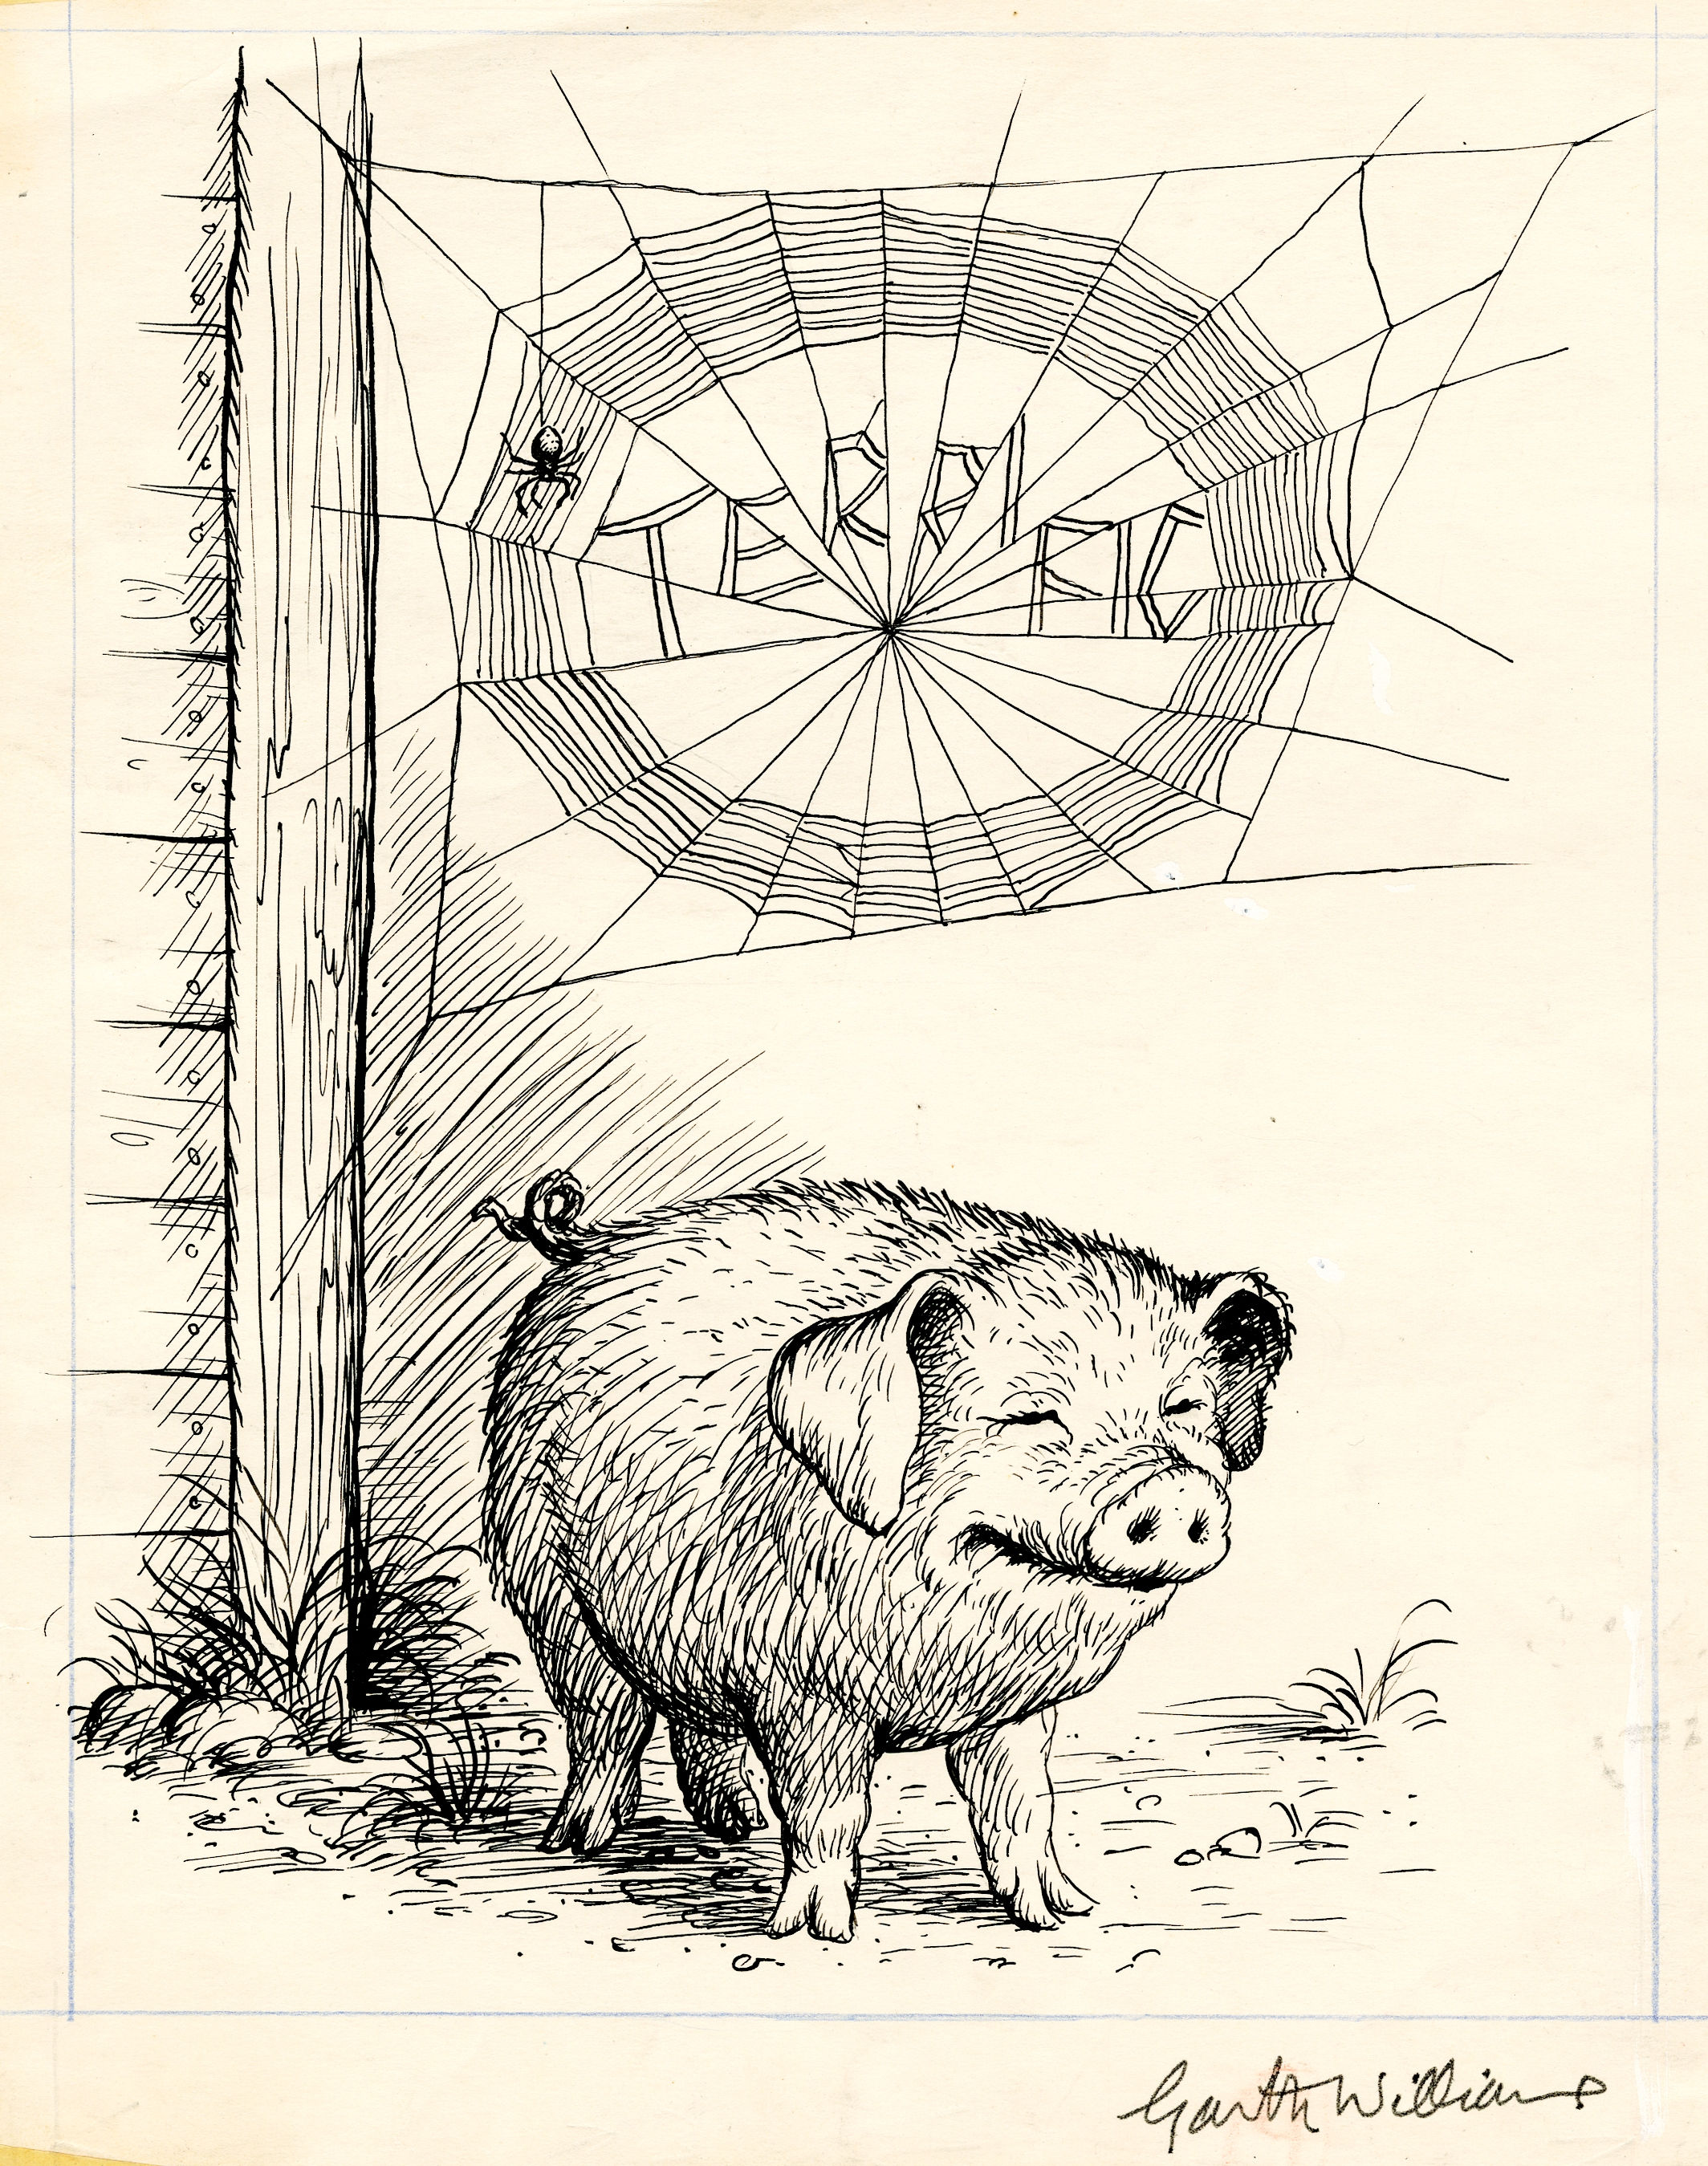 grammarian, grammar, writing tips, Charlotte's Web, E.B. White